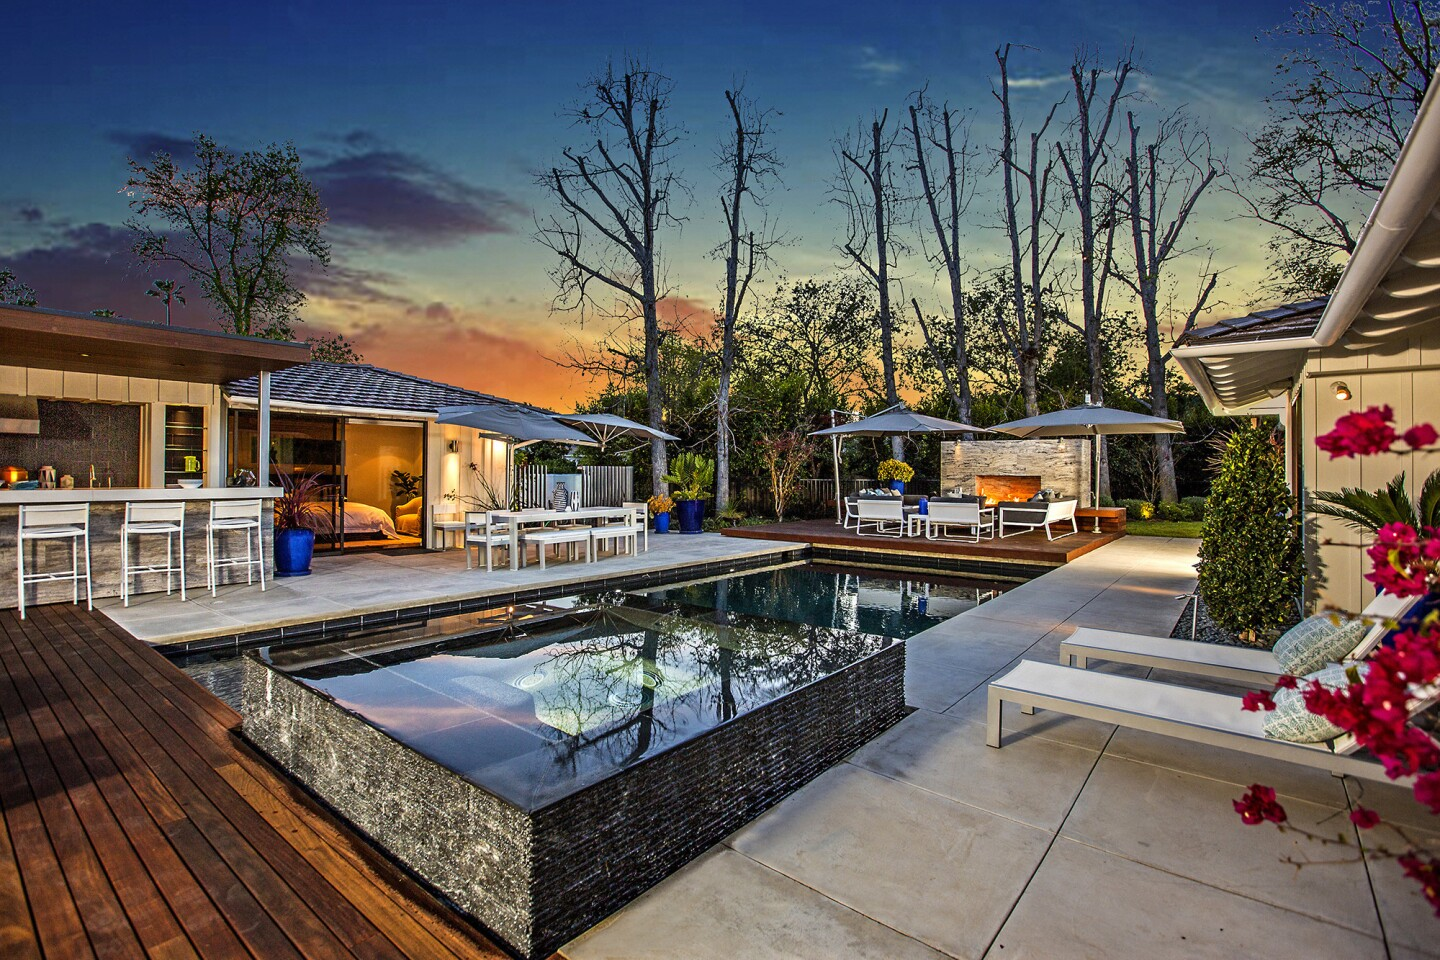 Home of the Week | A Midcentury outlier in San Marino